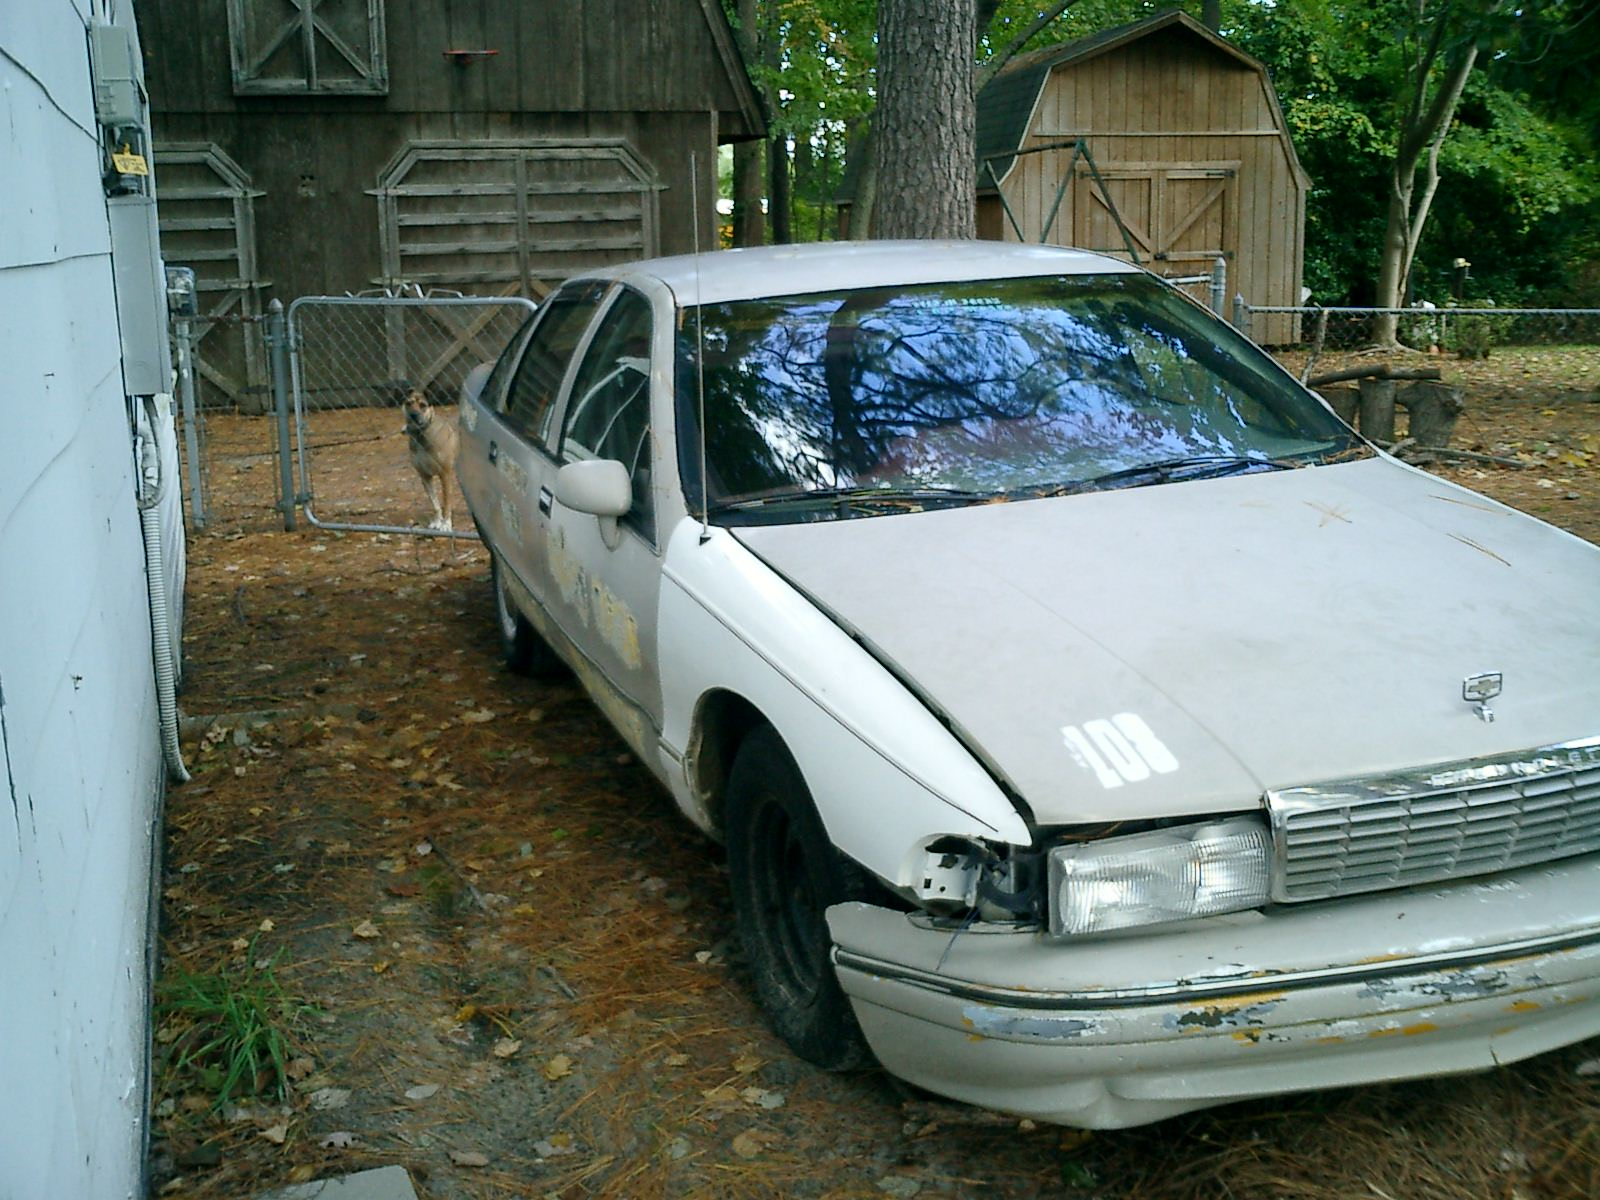 2008 Impala Ss For Sale >> 1992 Chevy Caprice 9C1 - Chevy Impala Forums